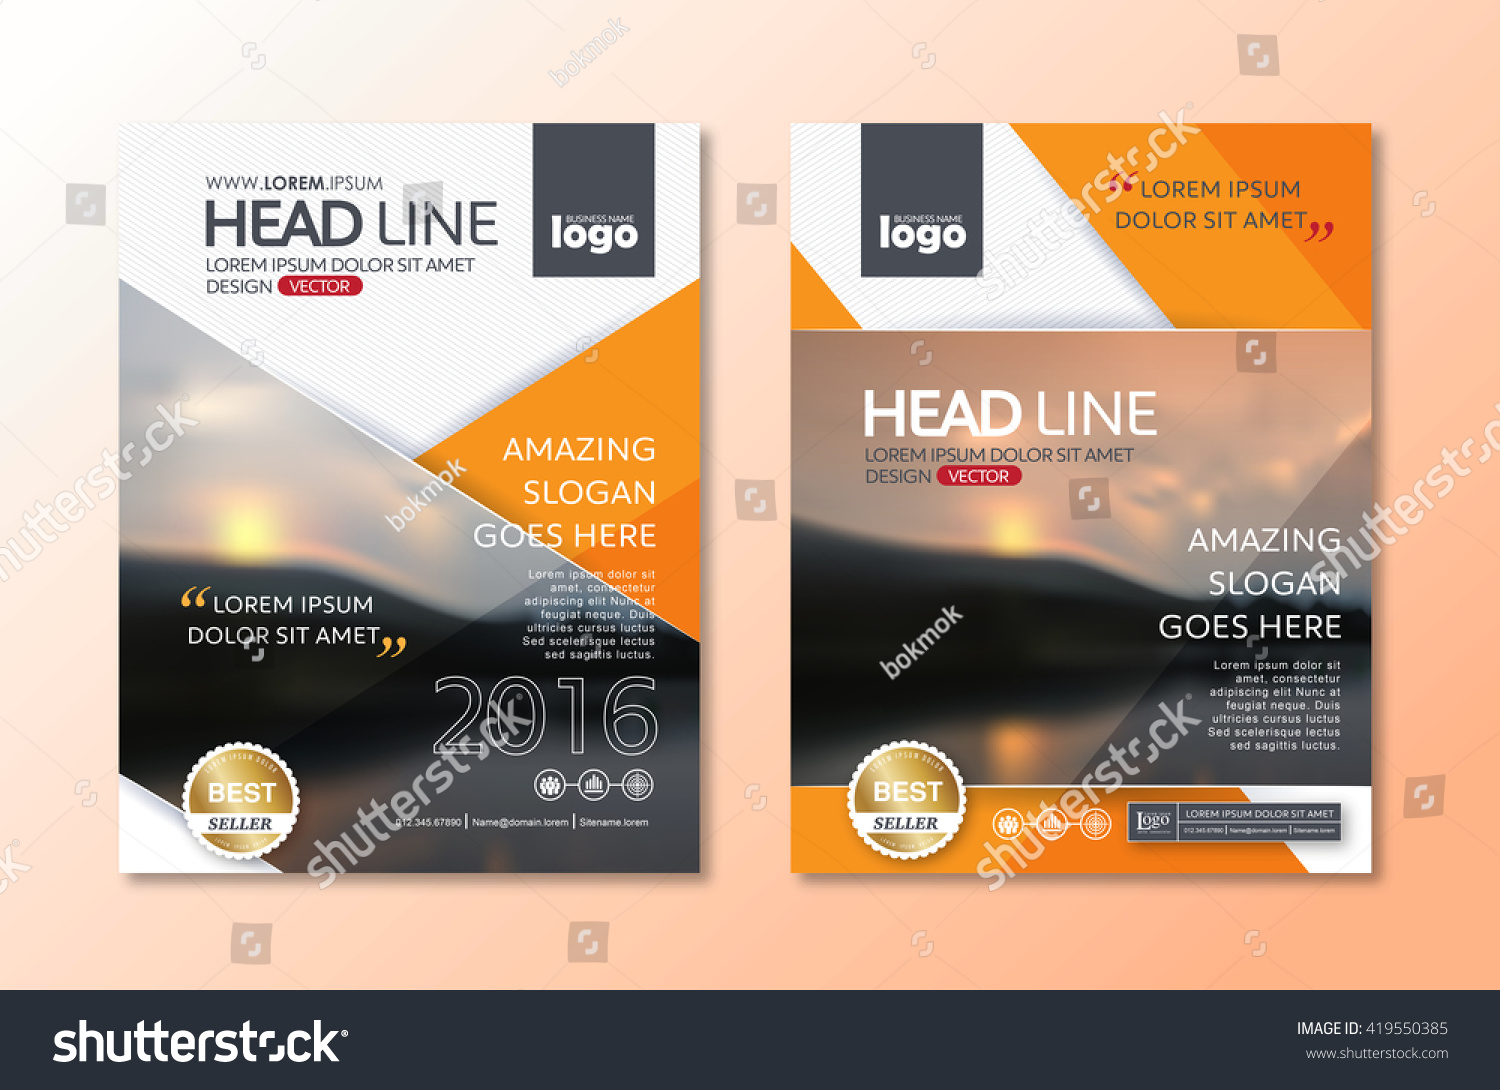 vector brochure flyer design layout template stock vector vector brochure flyer design layout template in a4 size book cover layout design